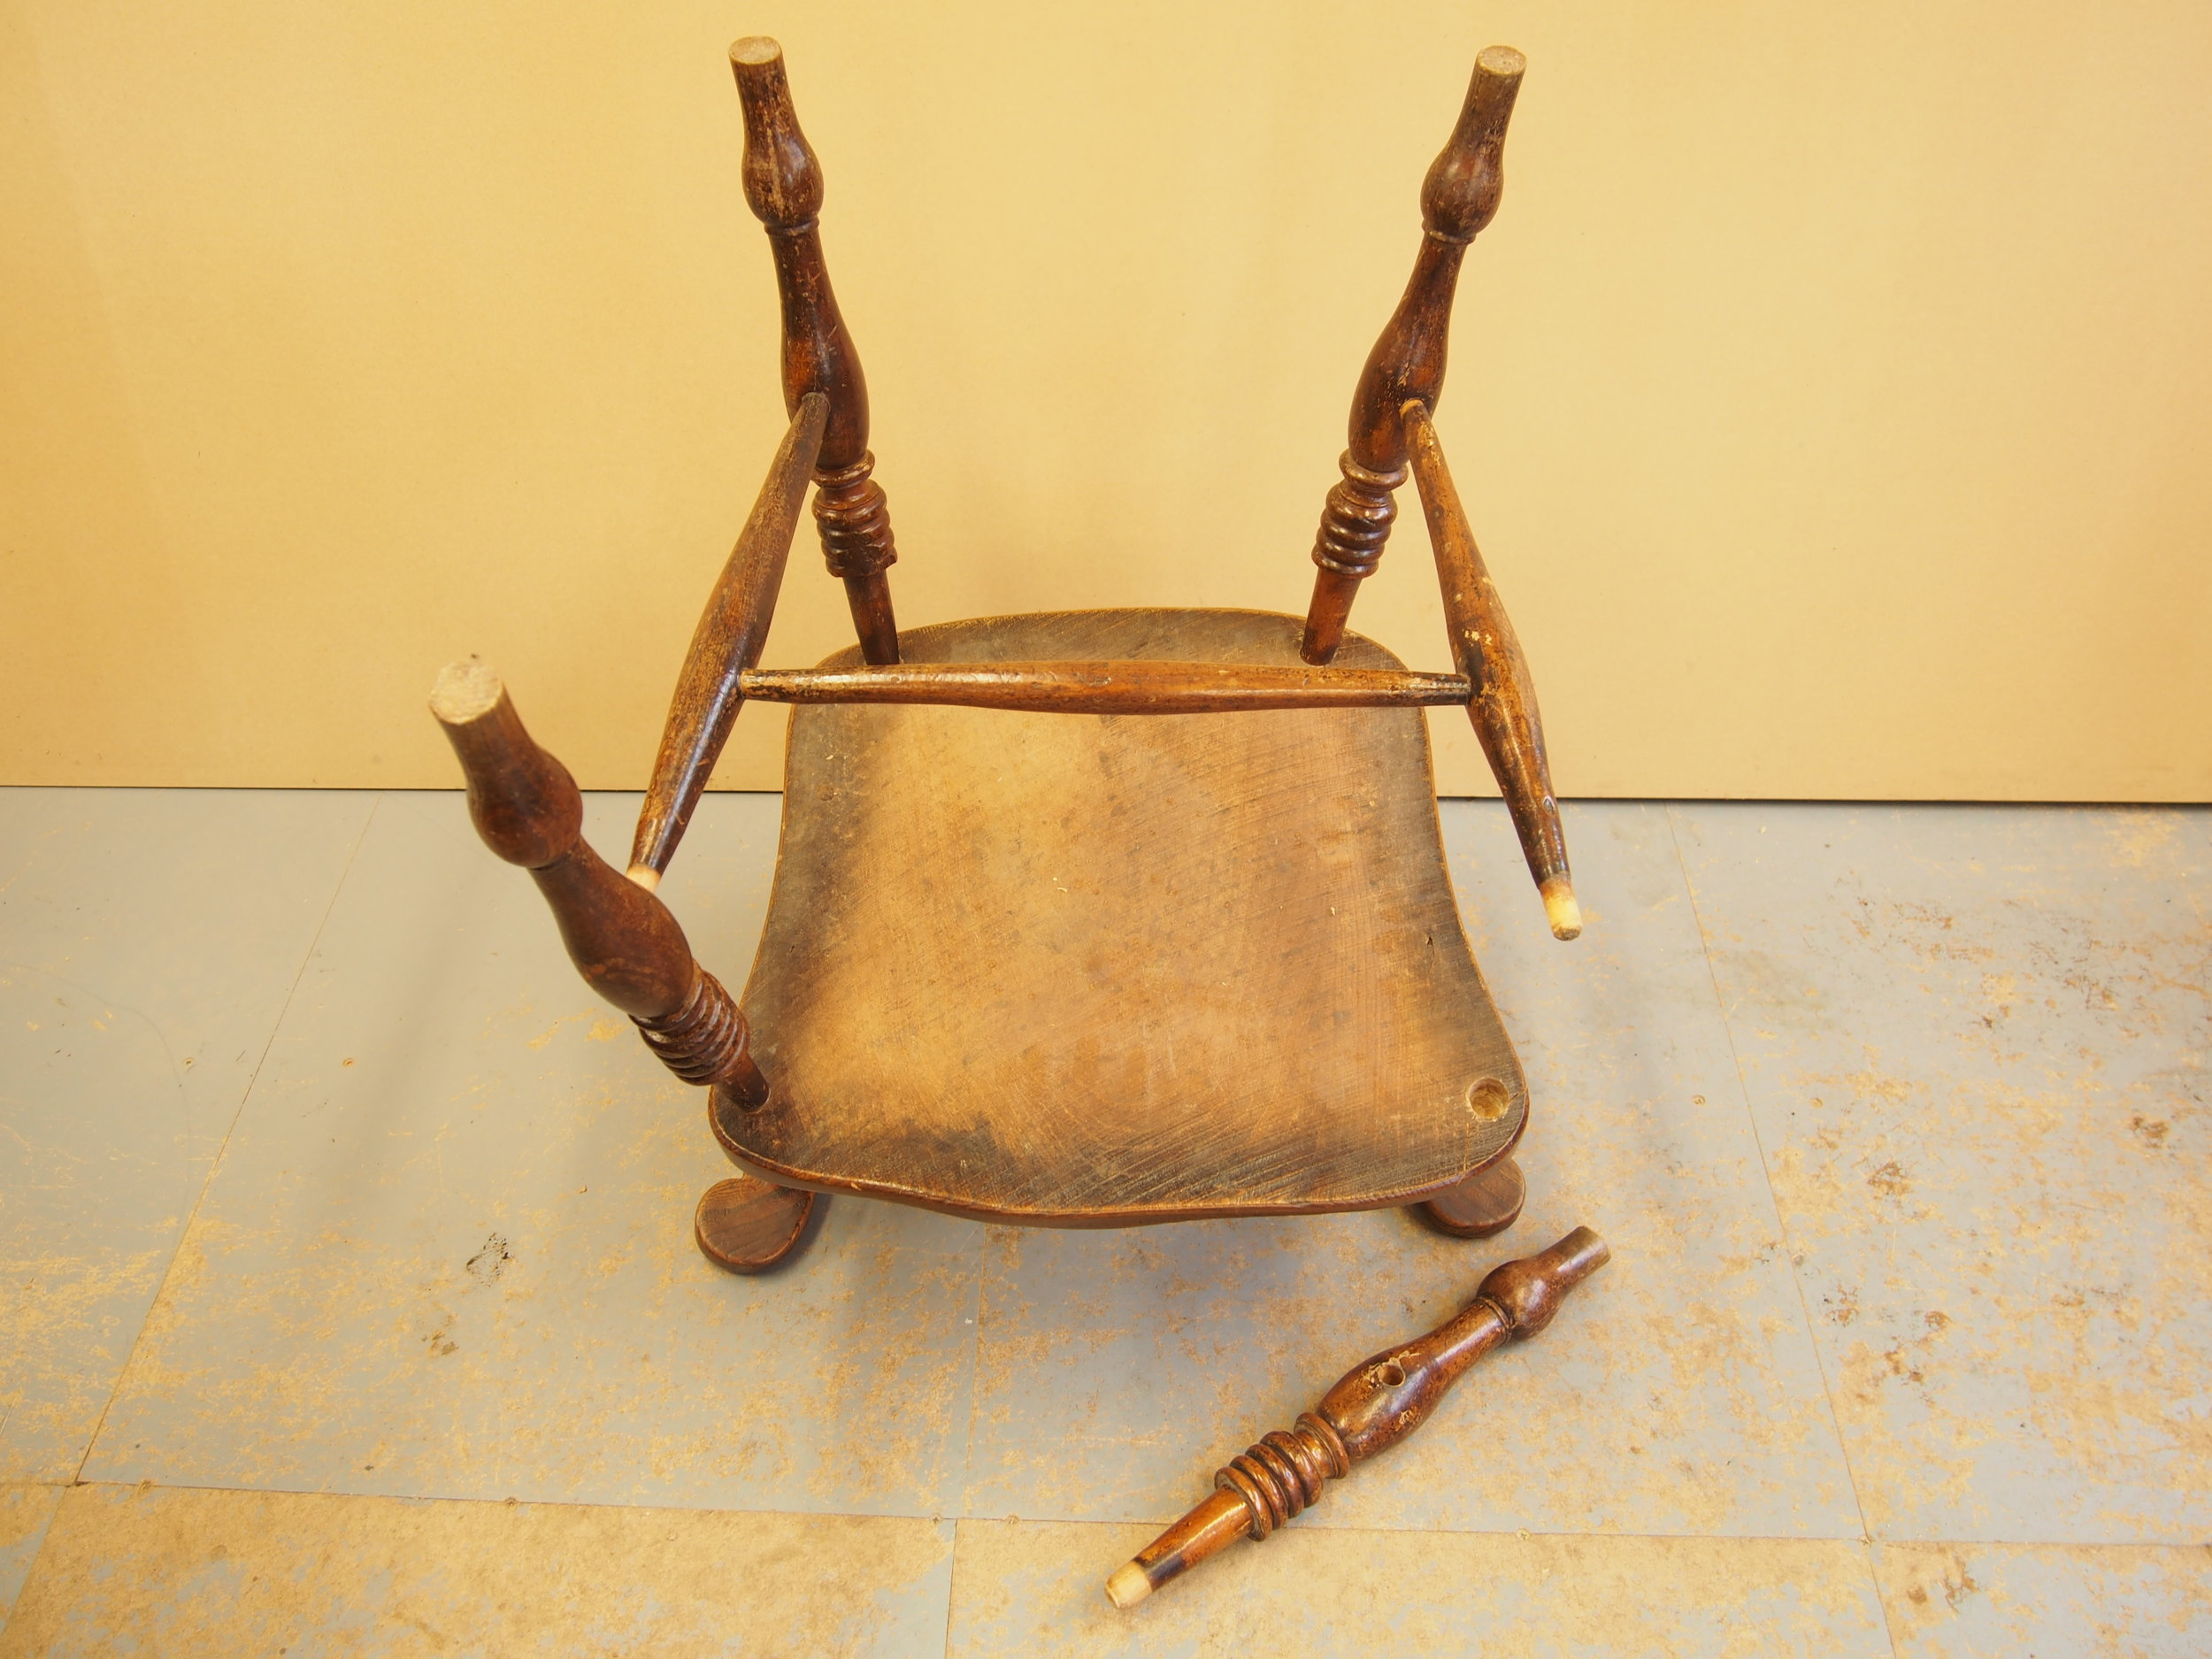 The Captains Chair was presented with loose joints on the entire under frame. One leg was detached and the entire surface of the chair was coated with a thick and dark finish.